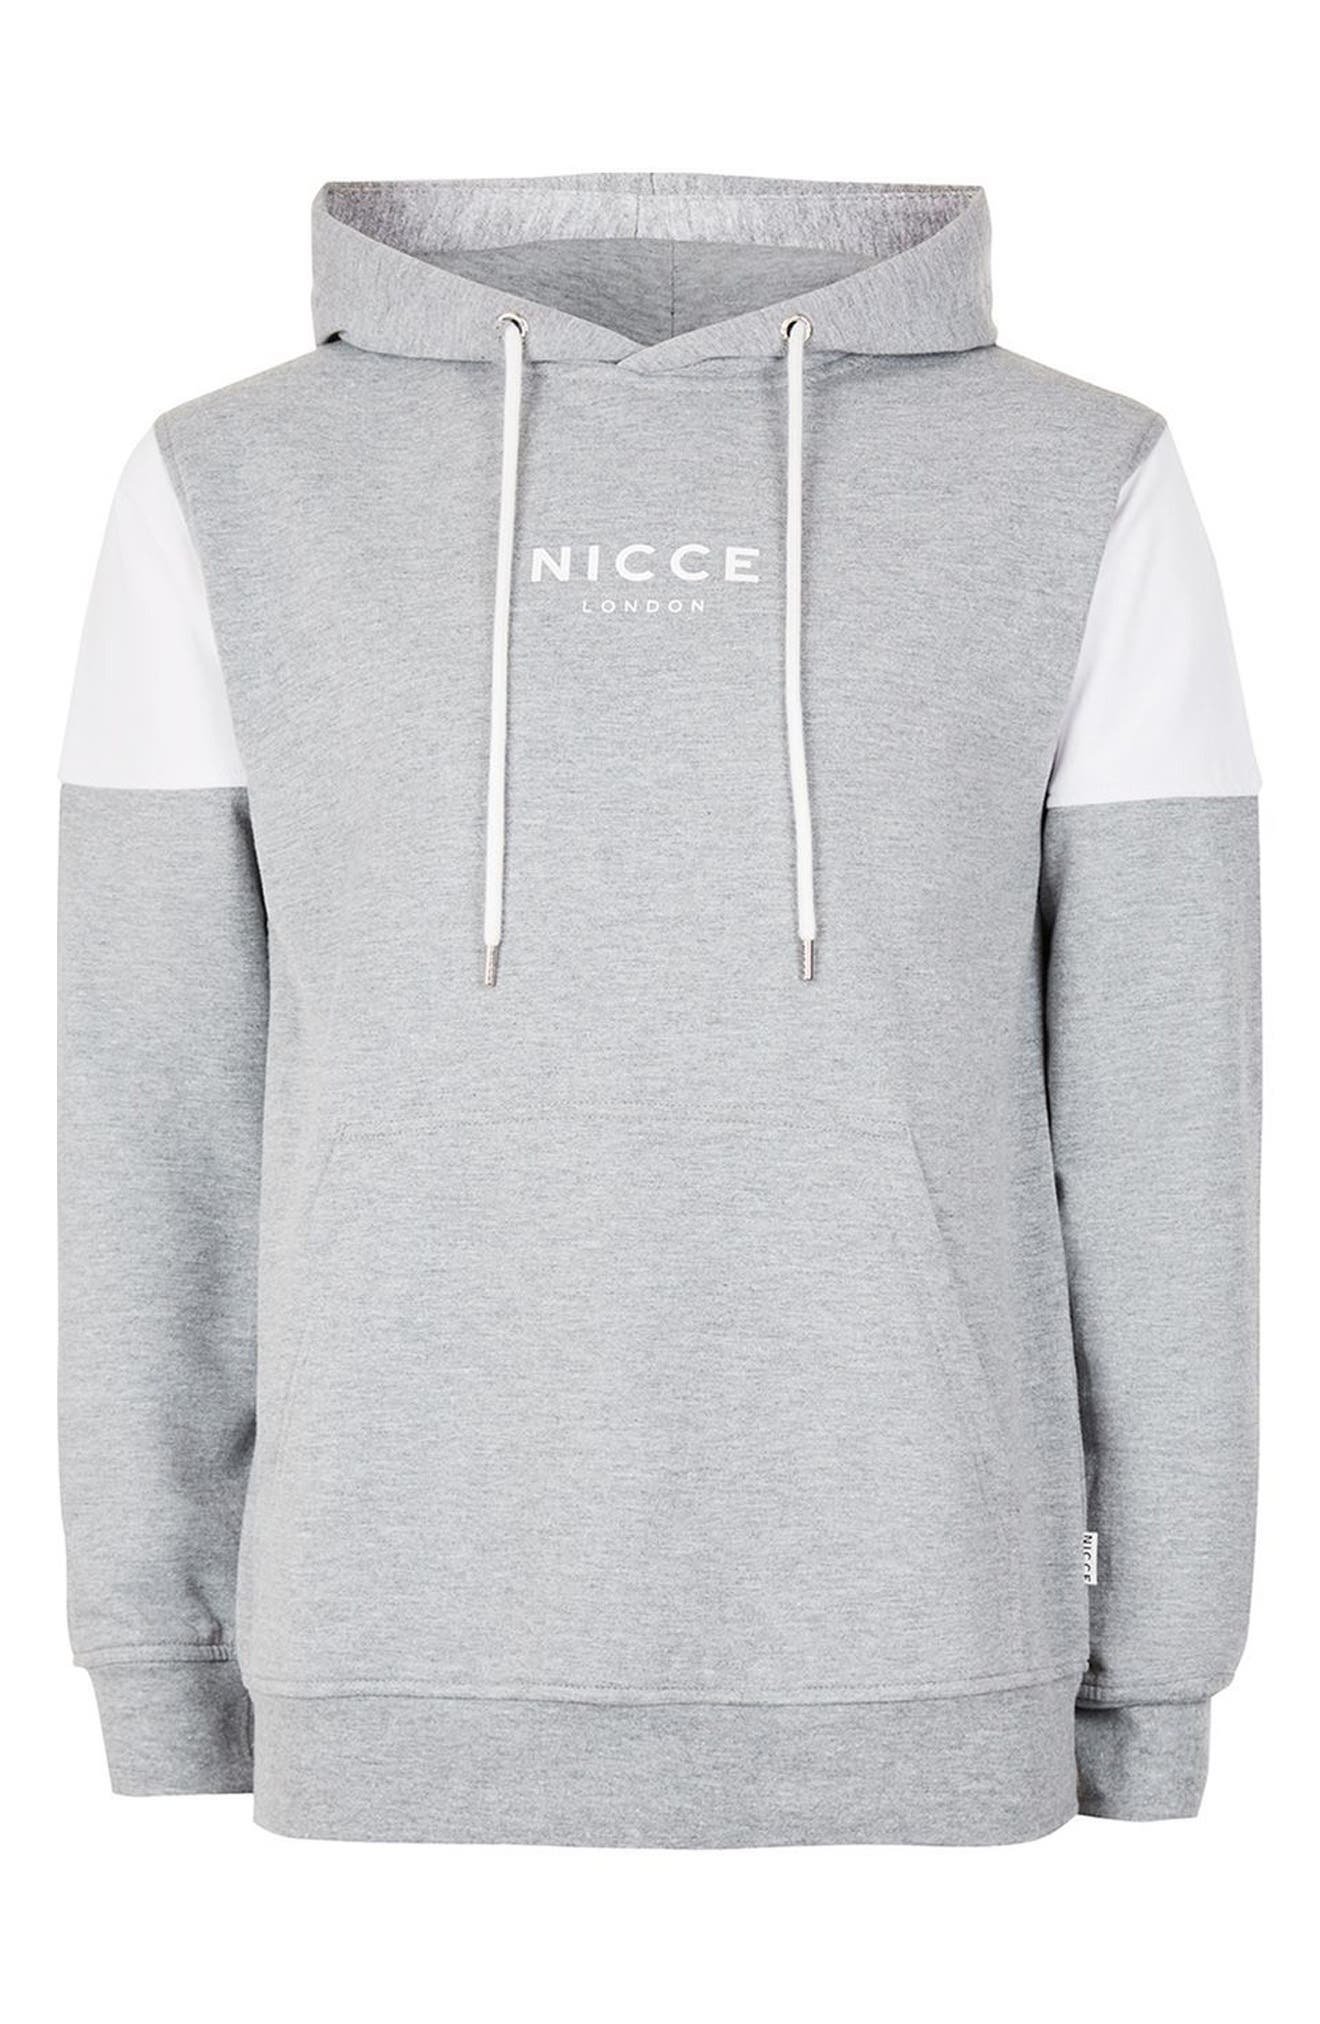 NICCE Slim Fit Colorblock Hoodie,                             Alternate thumbnail 4, color,                             Light Grey Multi